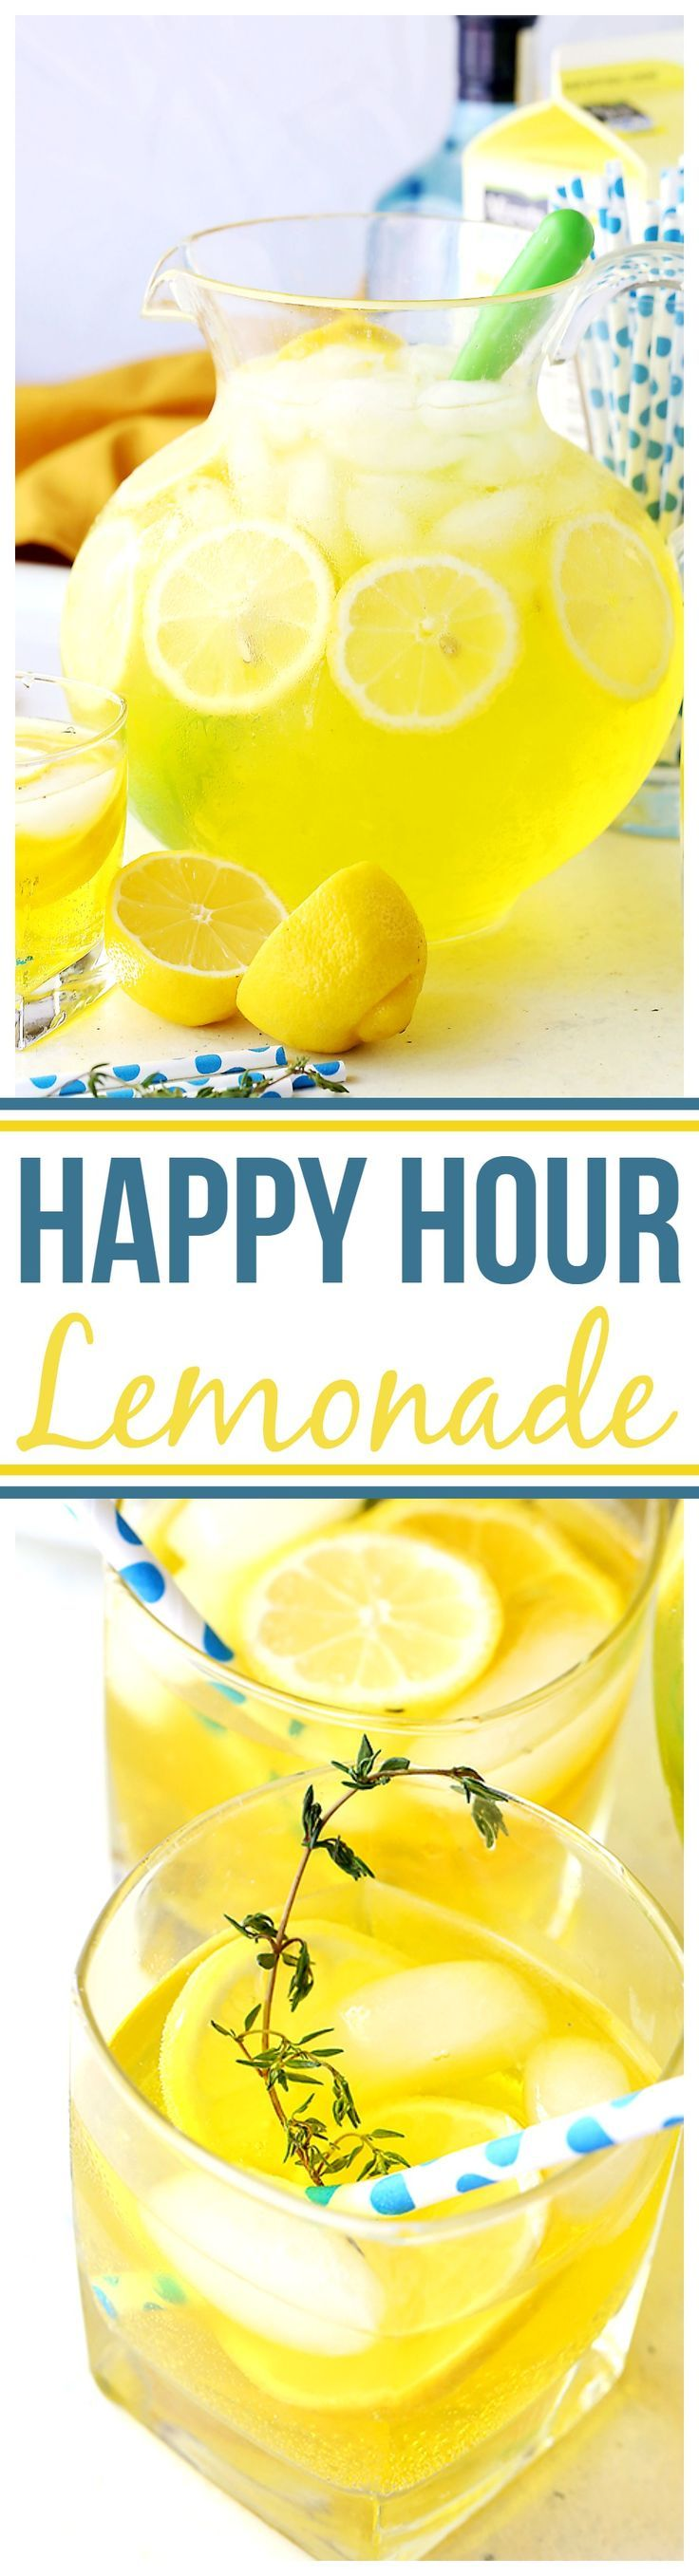 Happy Hour Lemonade - A fun and delicious twist on traditional Lemonade with 7-up, vodka, gin and triple sec. Perfectly refreshing and bright, everyone always comes back for more!